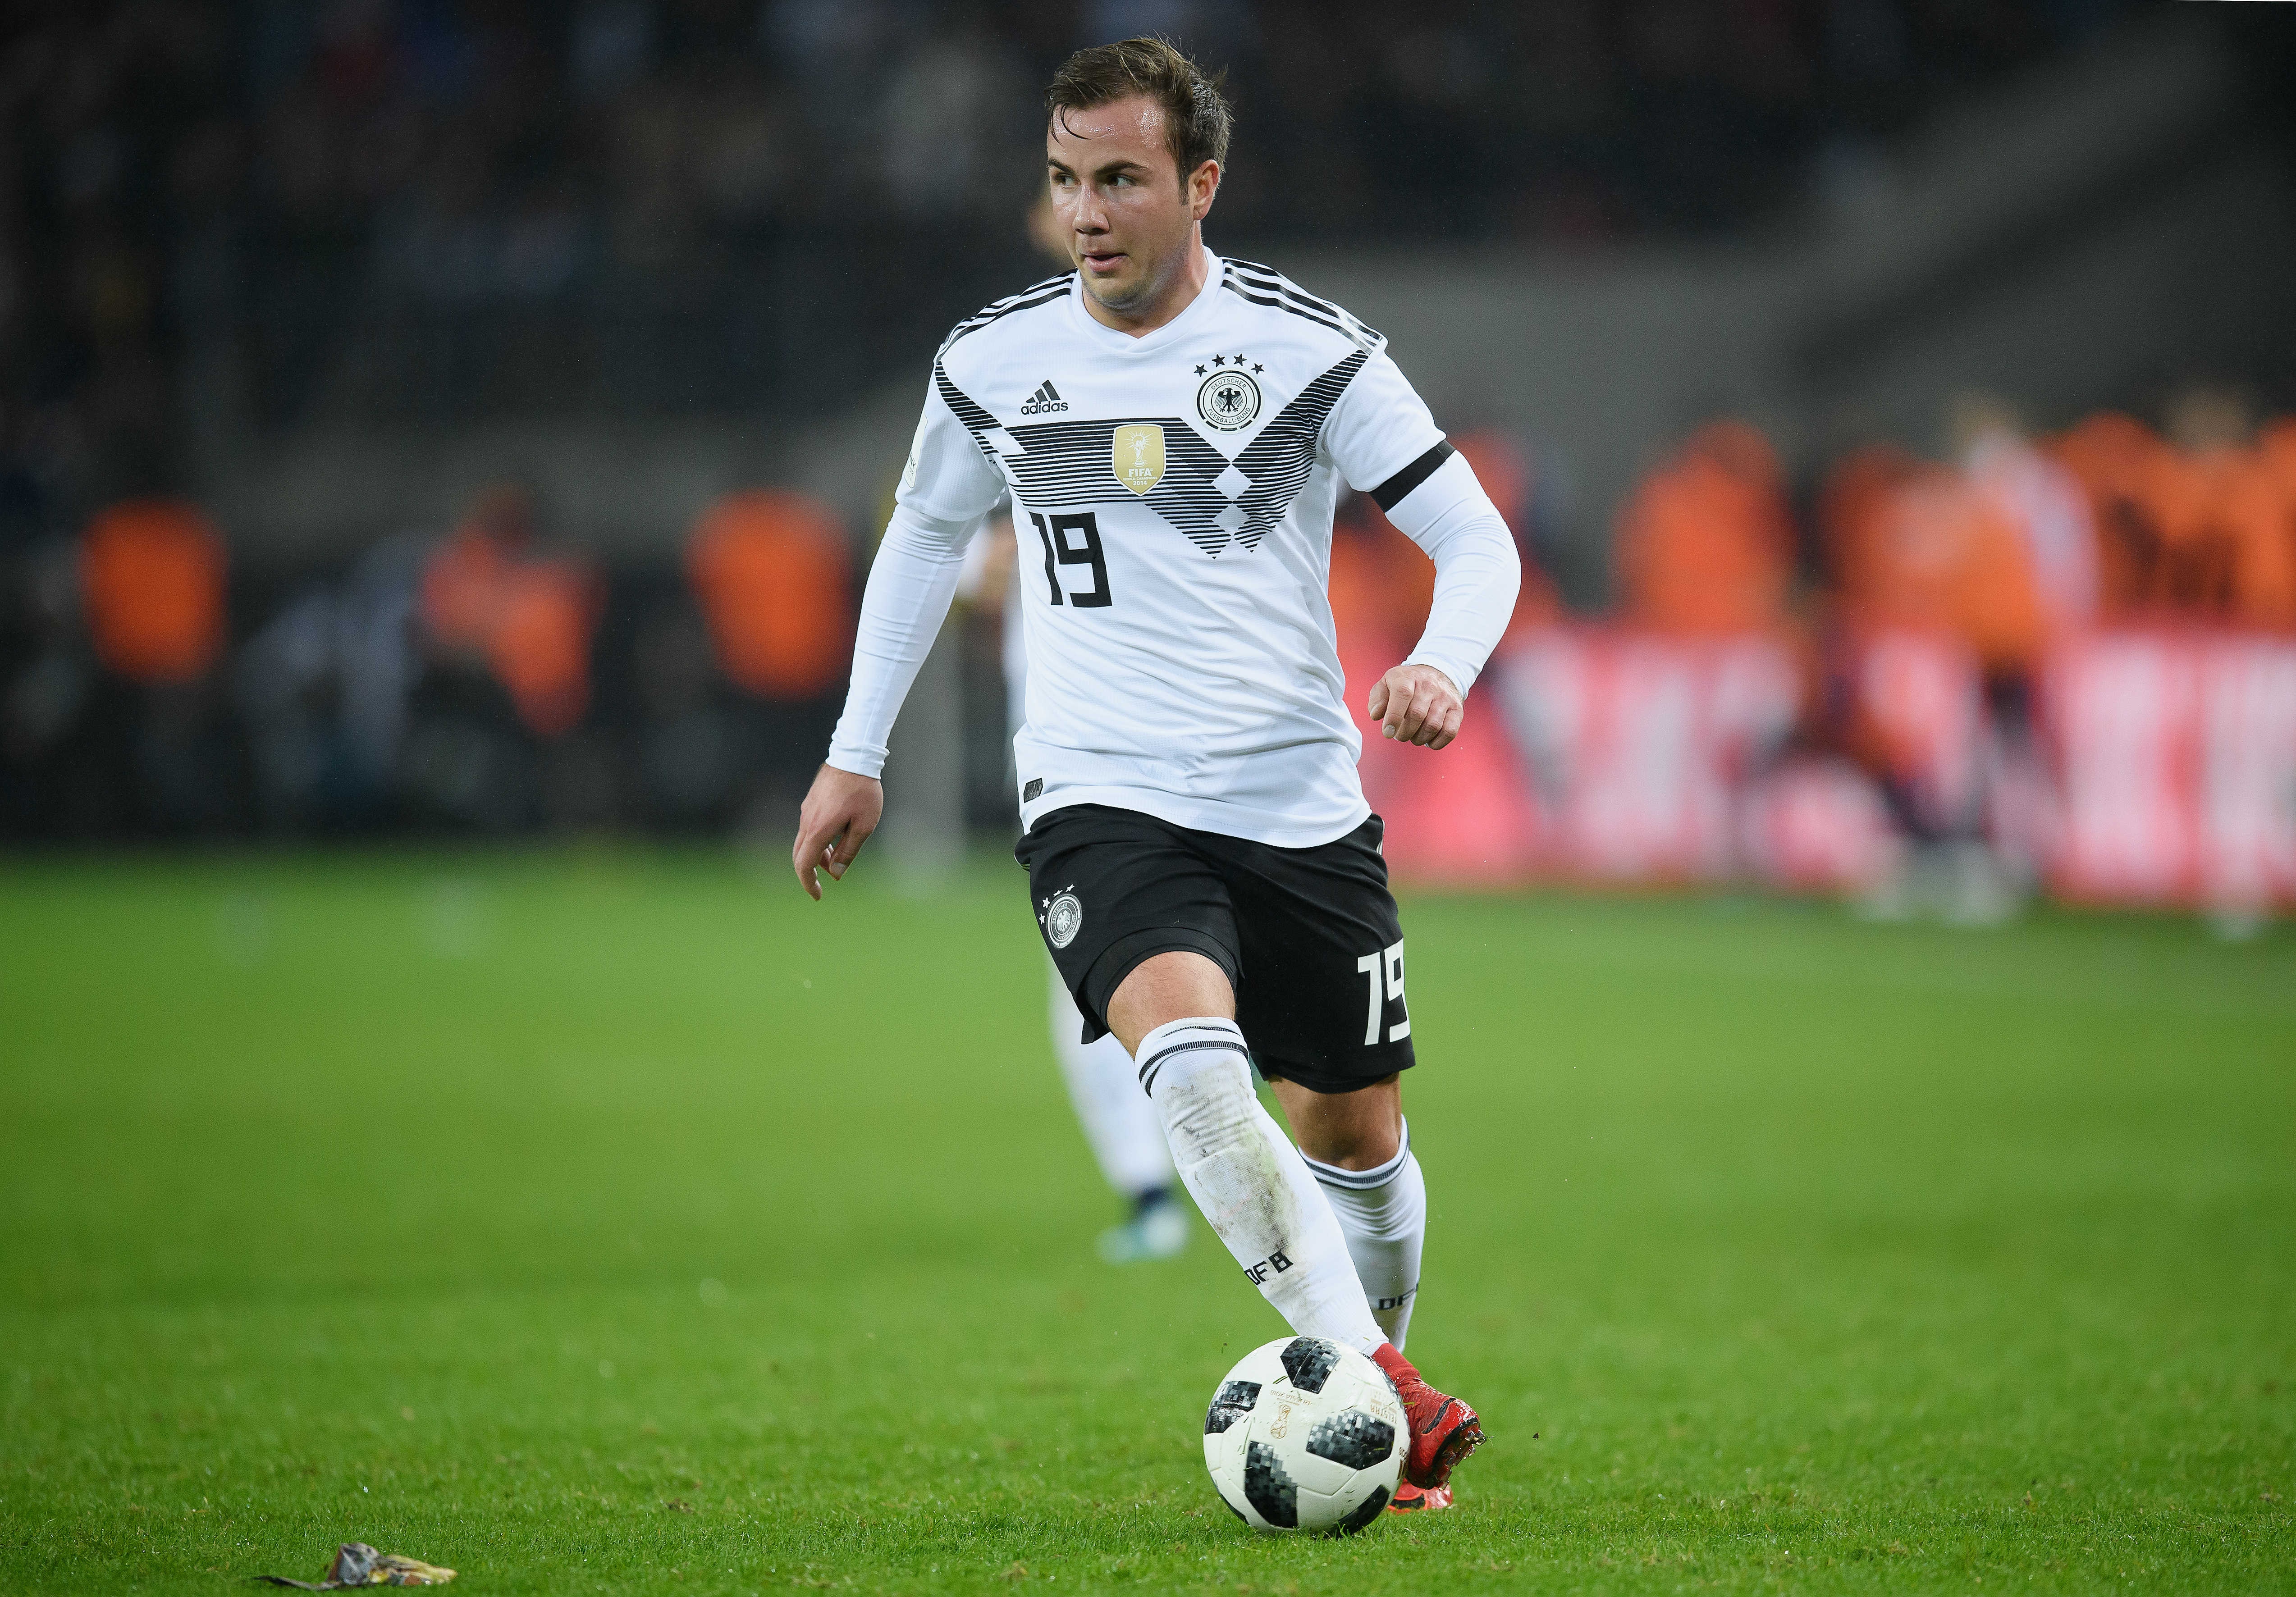 VIDEO: The evolution of dribbling and control with Mario Gotze